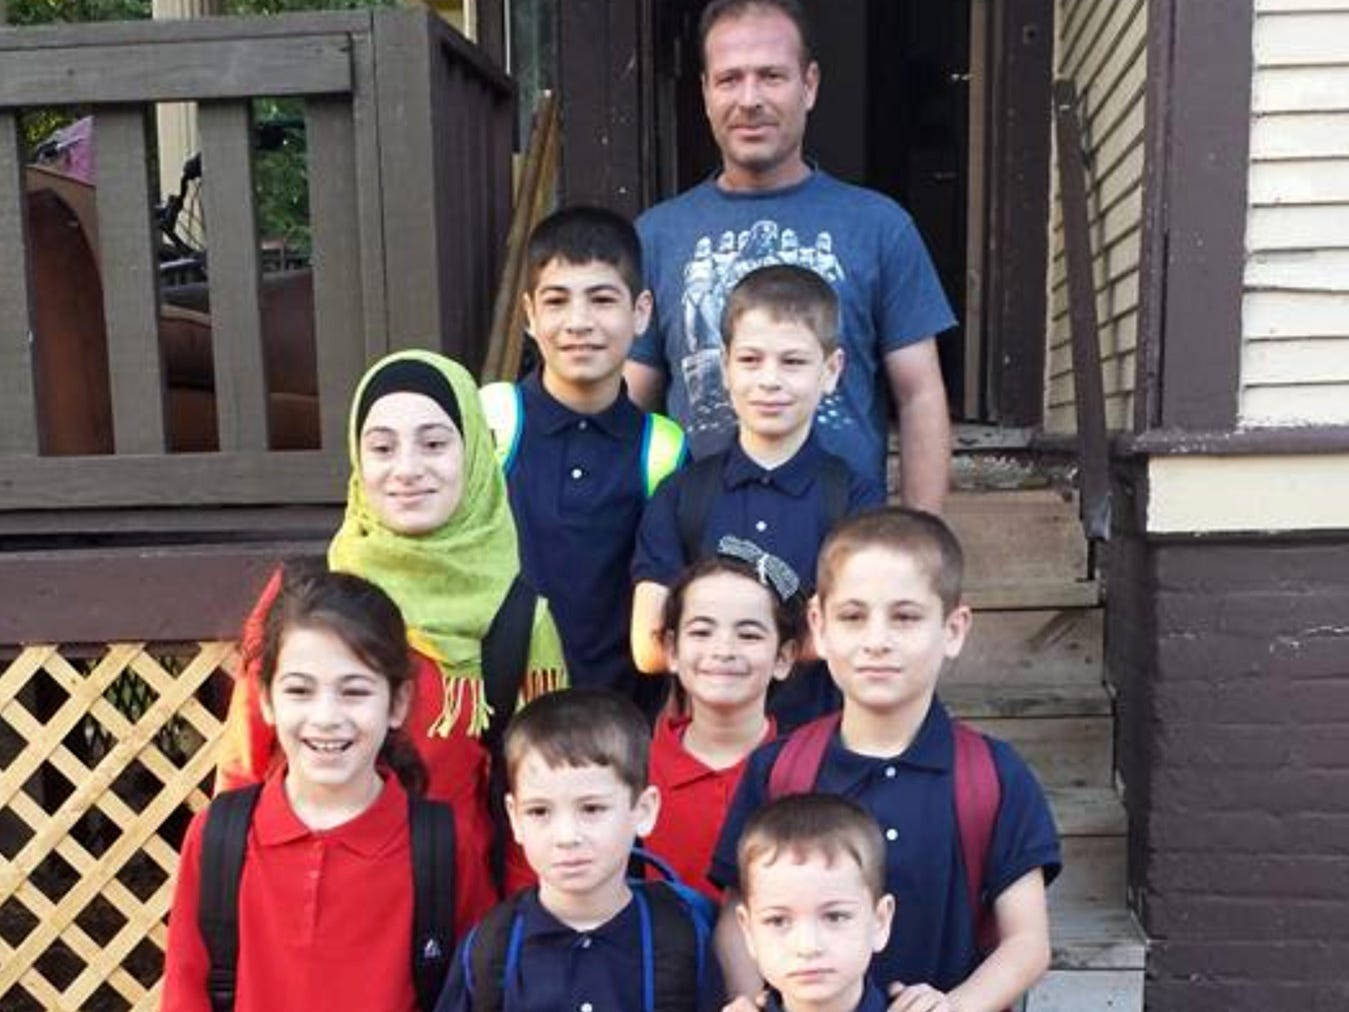 Turki Hamdoun (back) poses for a photo with eight of his eleven children at their south side home on the first day of school in the fall of 2017.